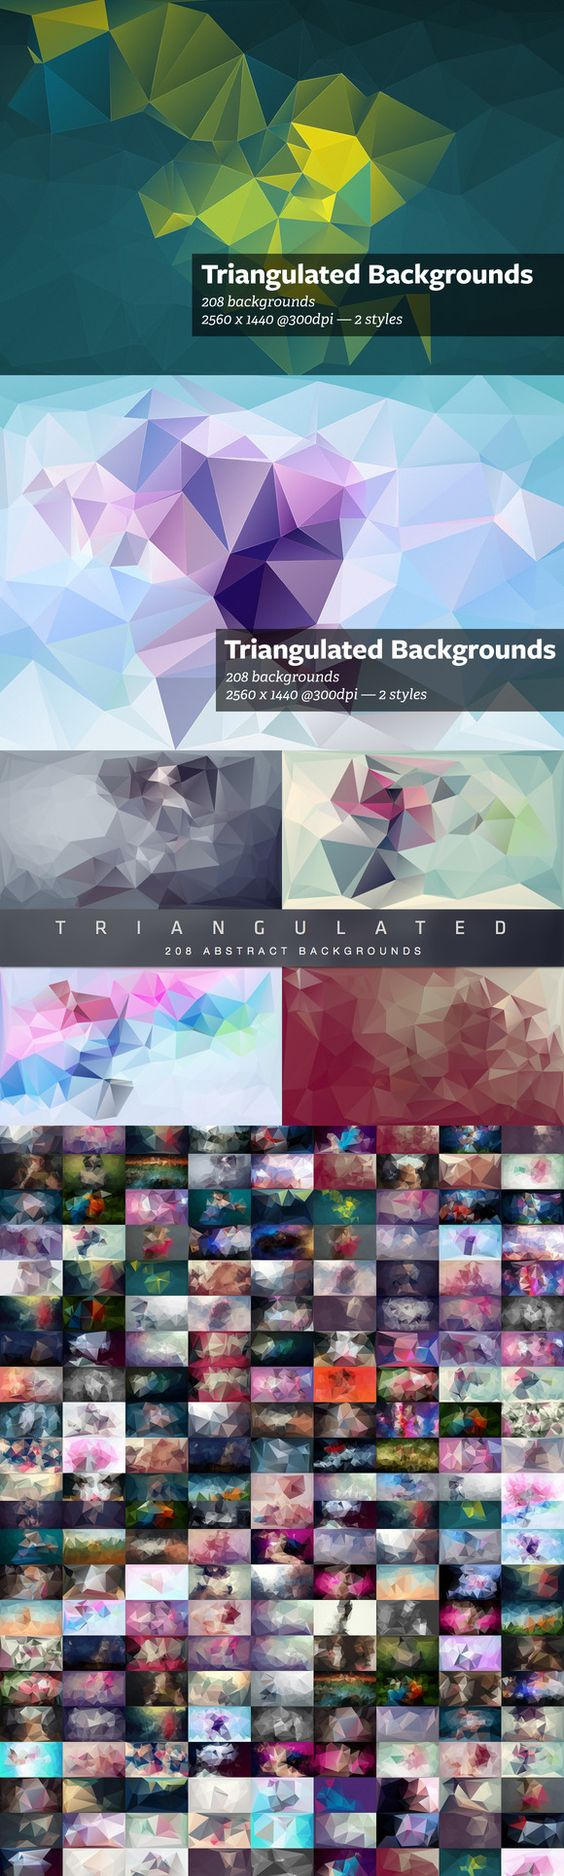 Check out Triangulated - Abstract Backgrounds by beto on Creative Market